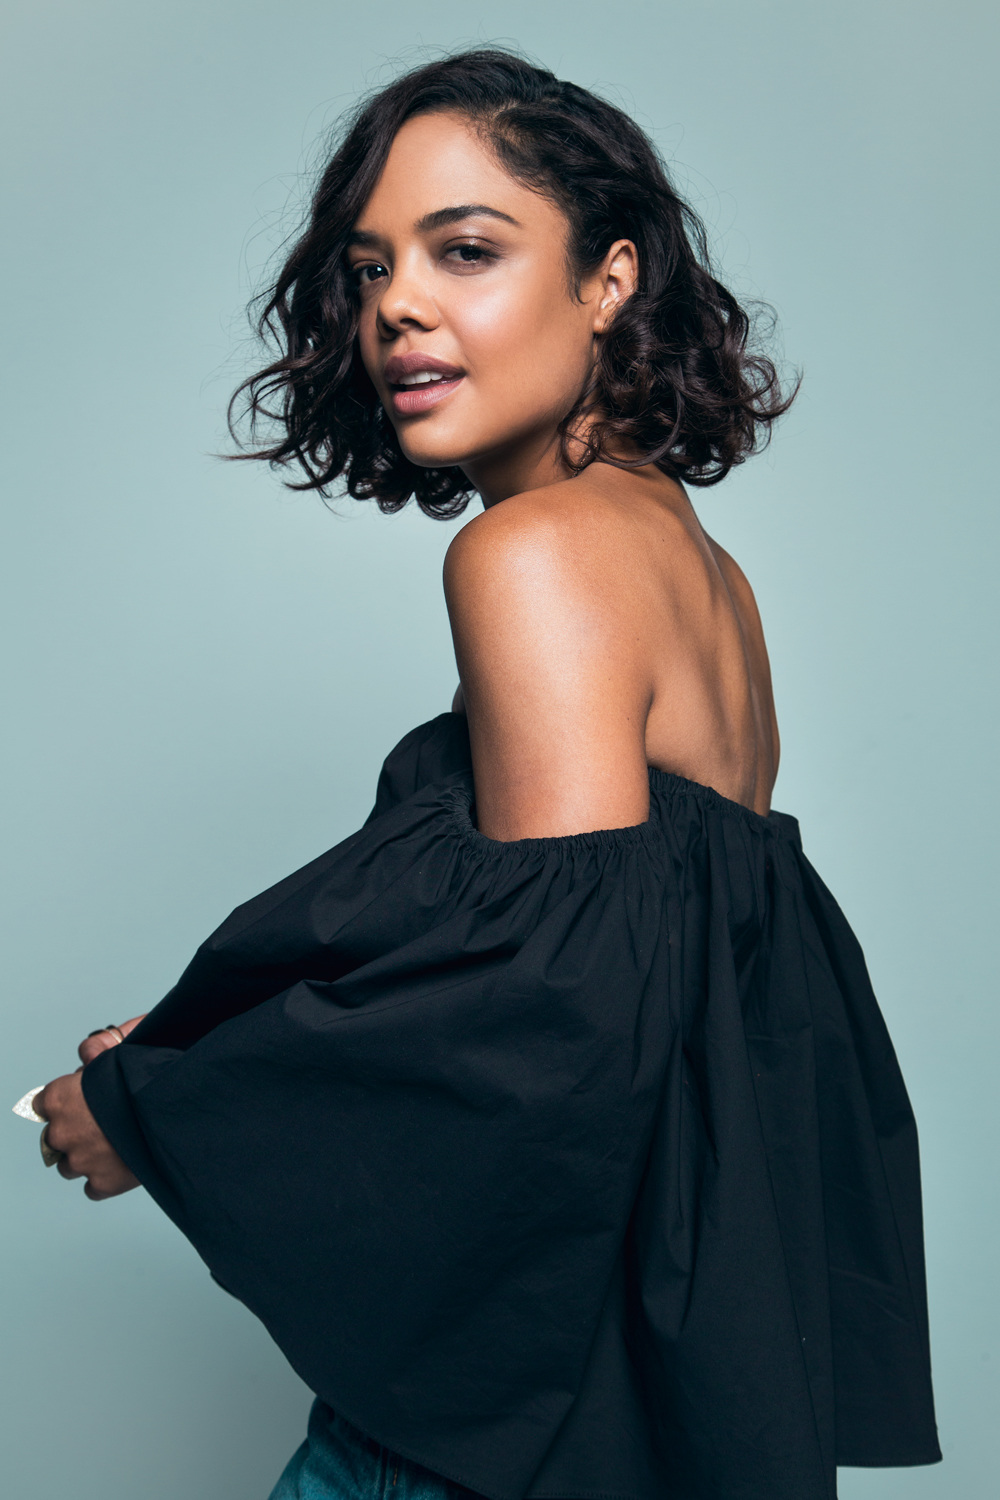 tessa thompson музыка